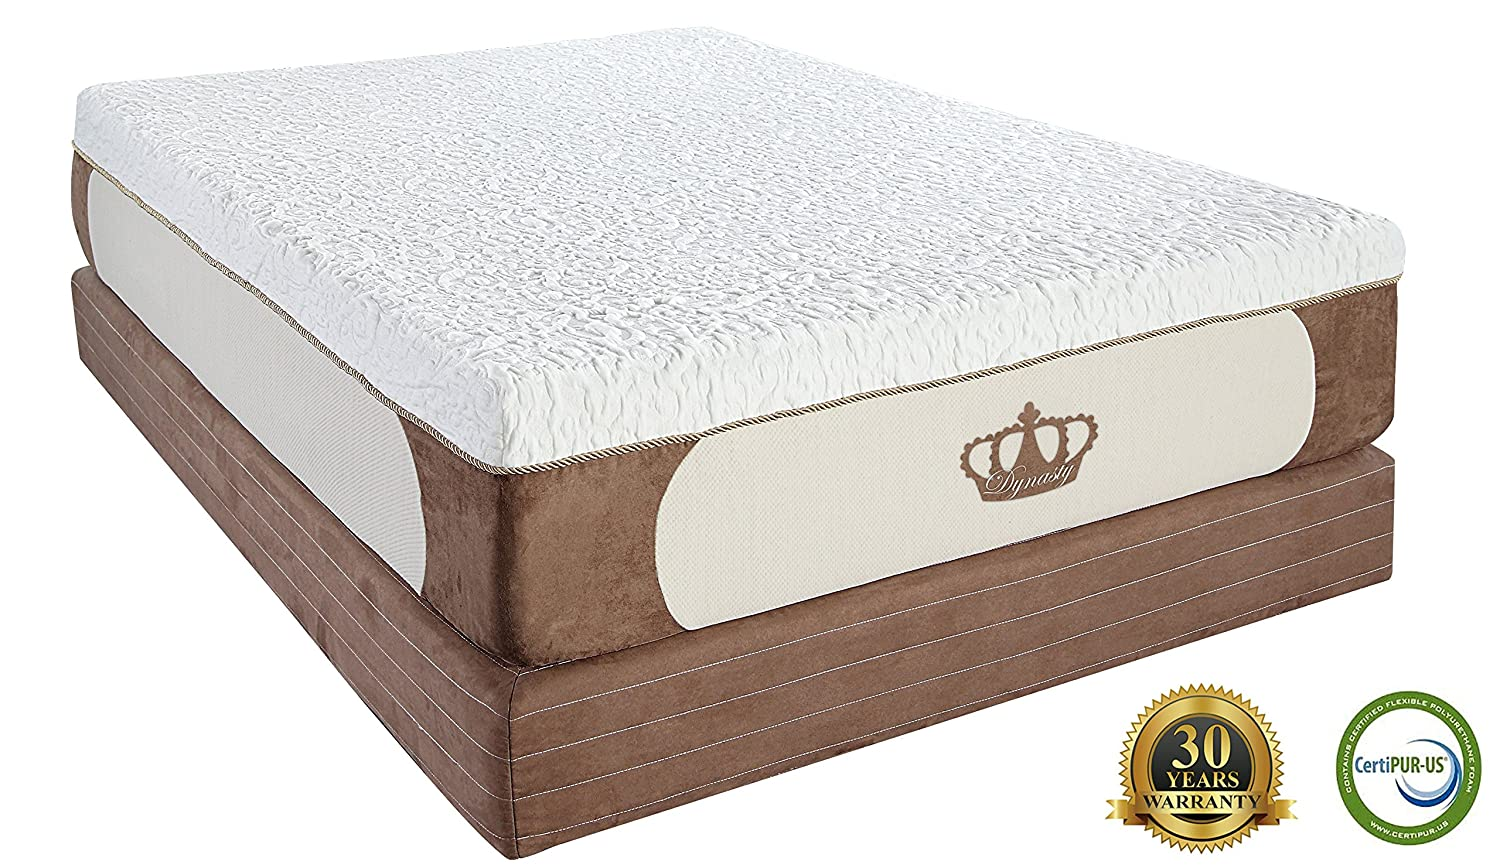 Dynastymattress cool breeze 12 inch gel memory foam mattress review Where to buy mattress foam